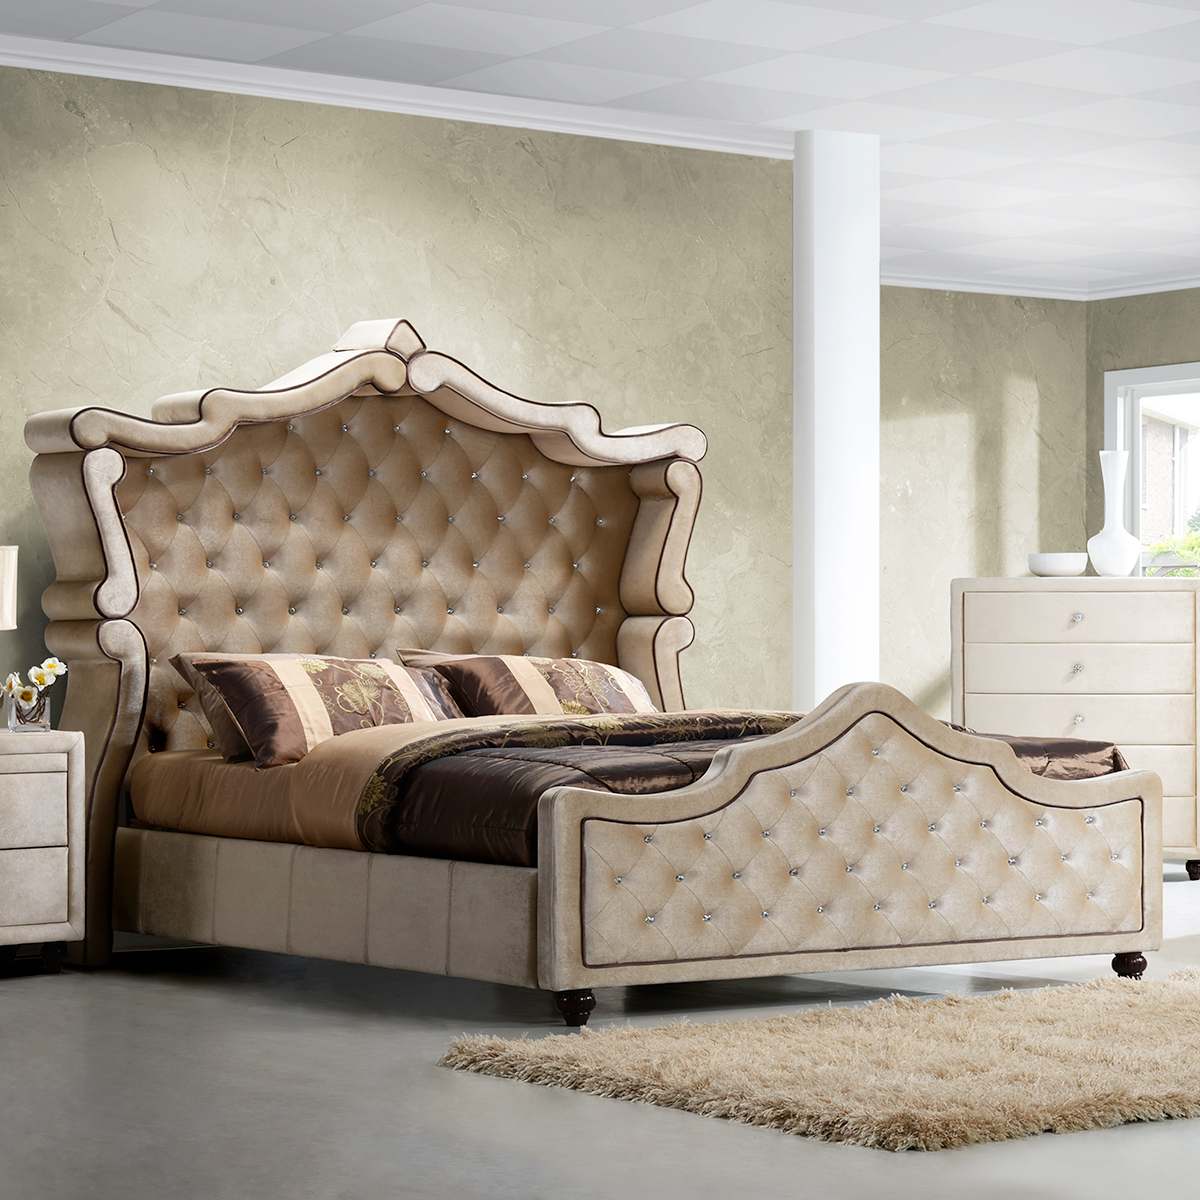 Meridian Furniture Diamond Queen Canopy Bed w/ Ornate Crystal Tufted Golden  Beige Velvet Headboard & Footboard